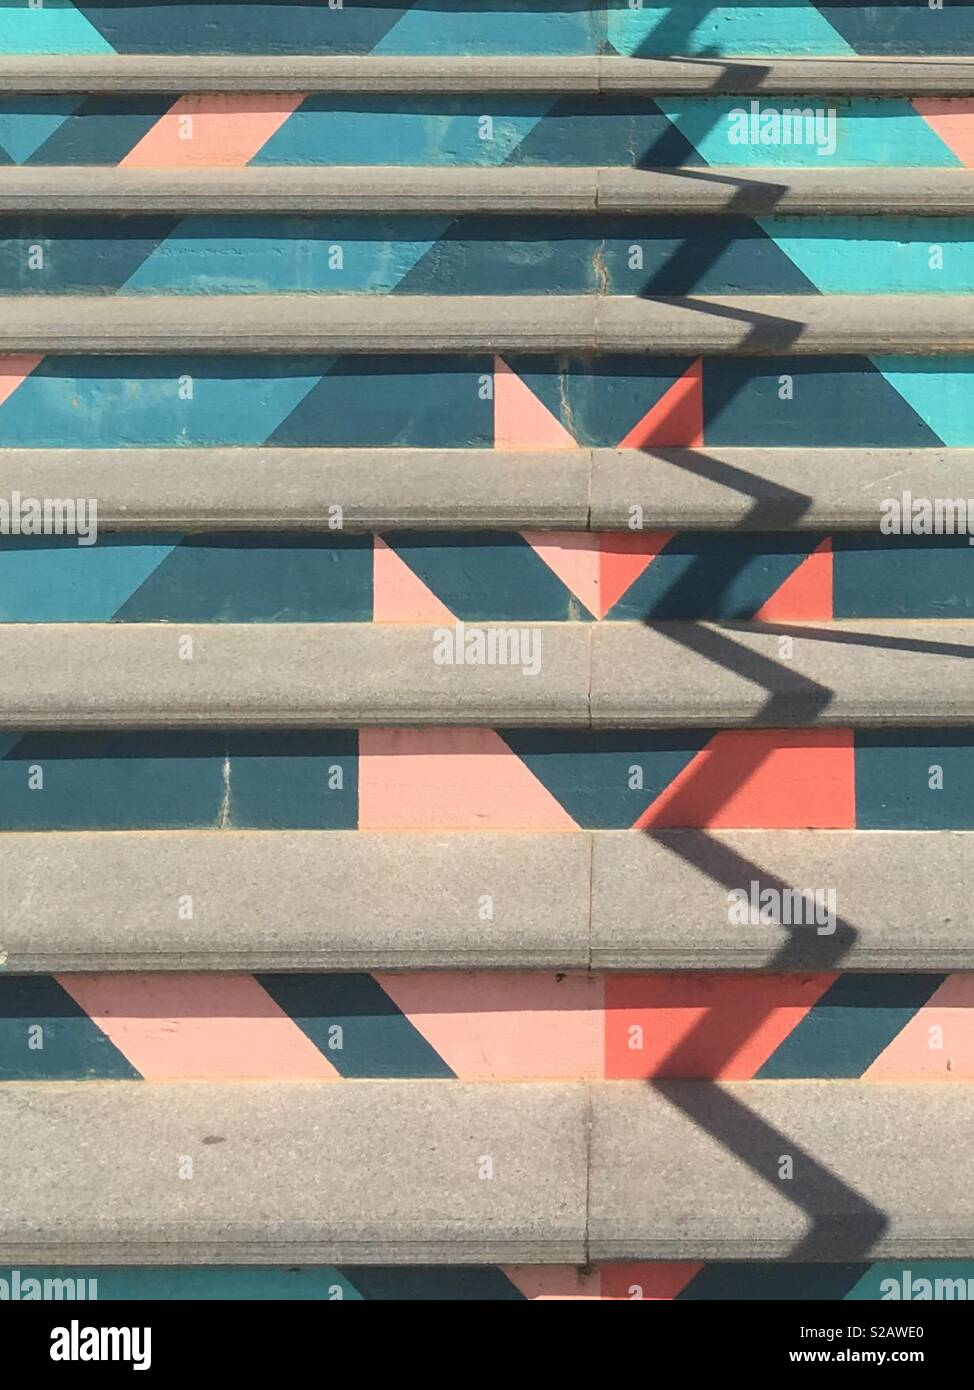 Arty stairs - Stock Image